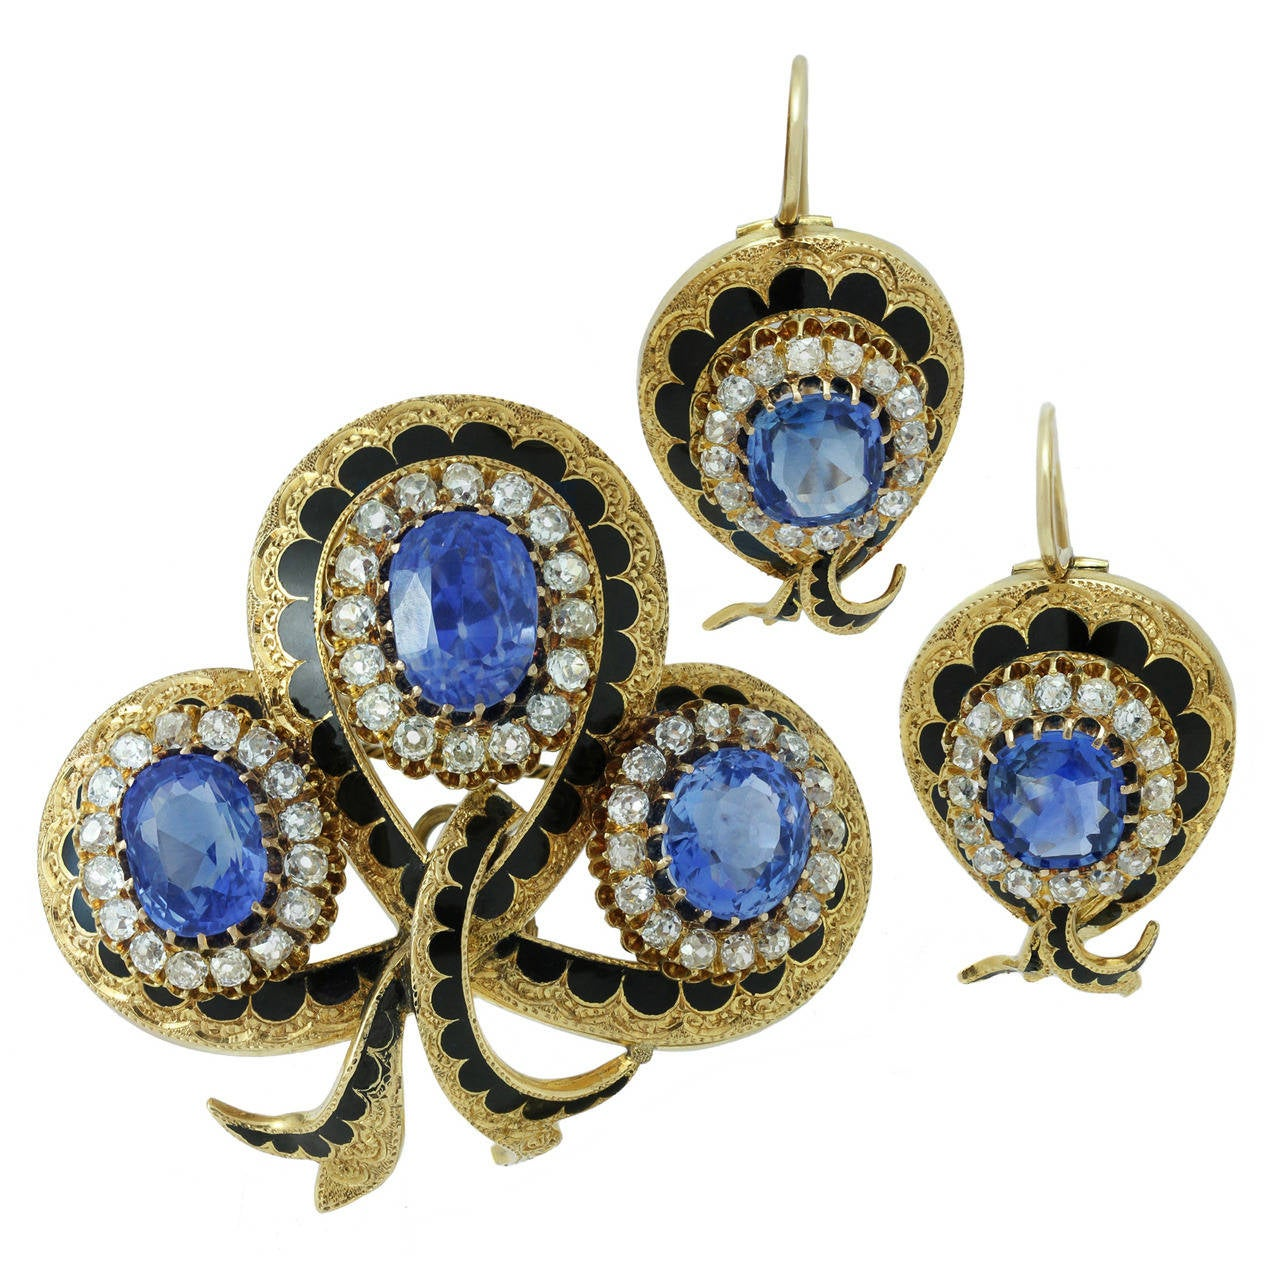 Victorian Enamel Sapphire Diamond Gold Jewelry Suite For Sale at 1stdibs